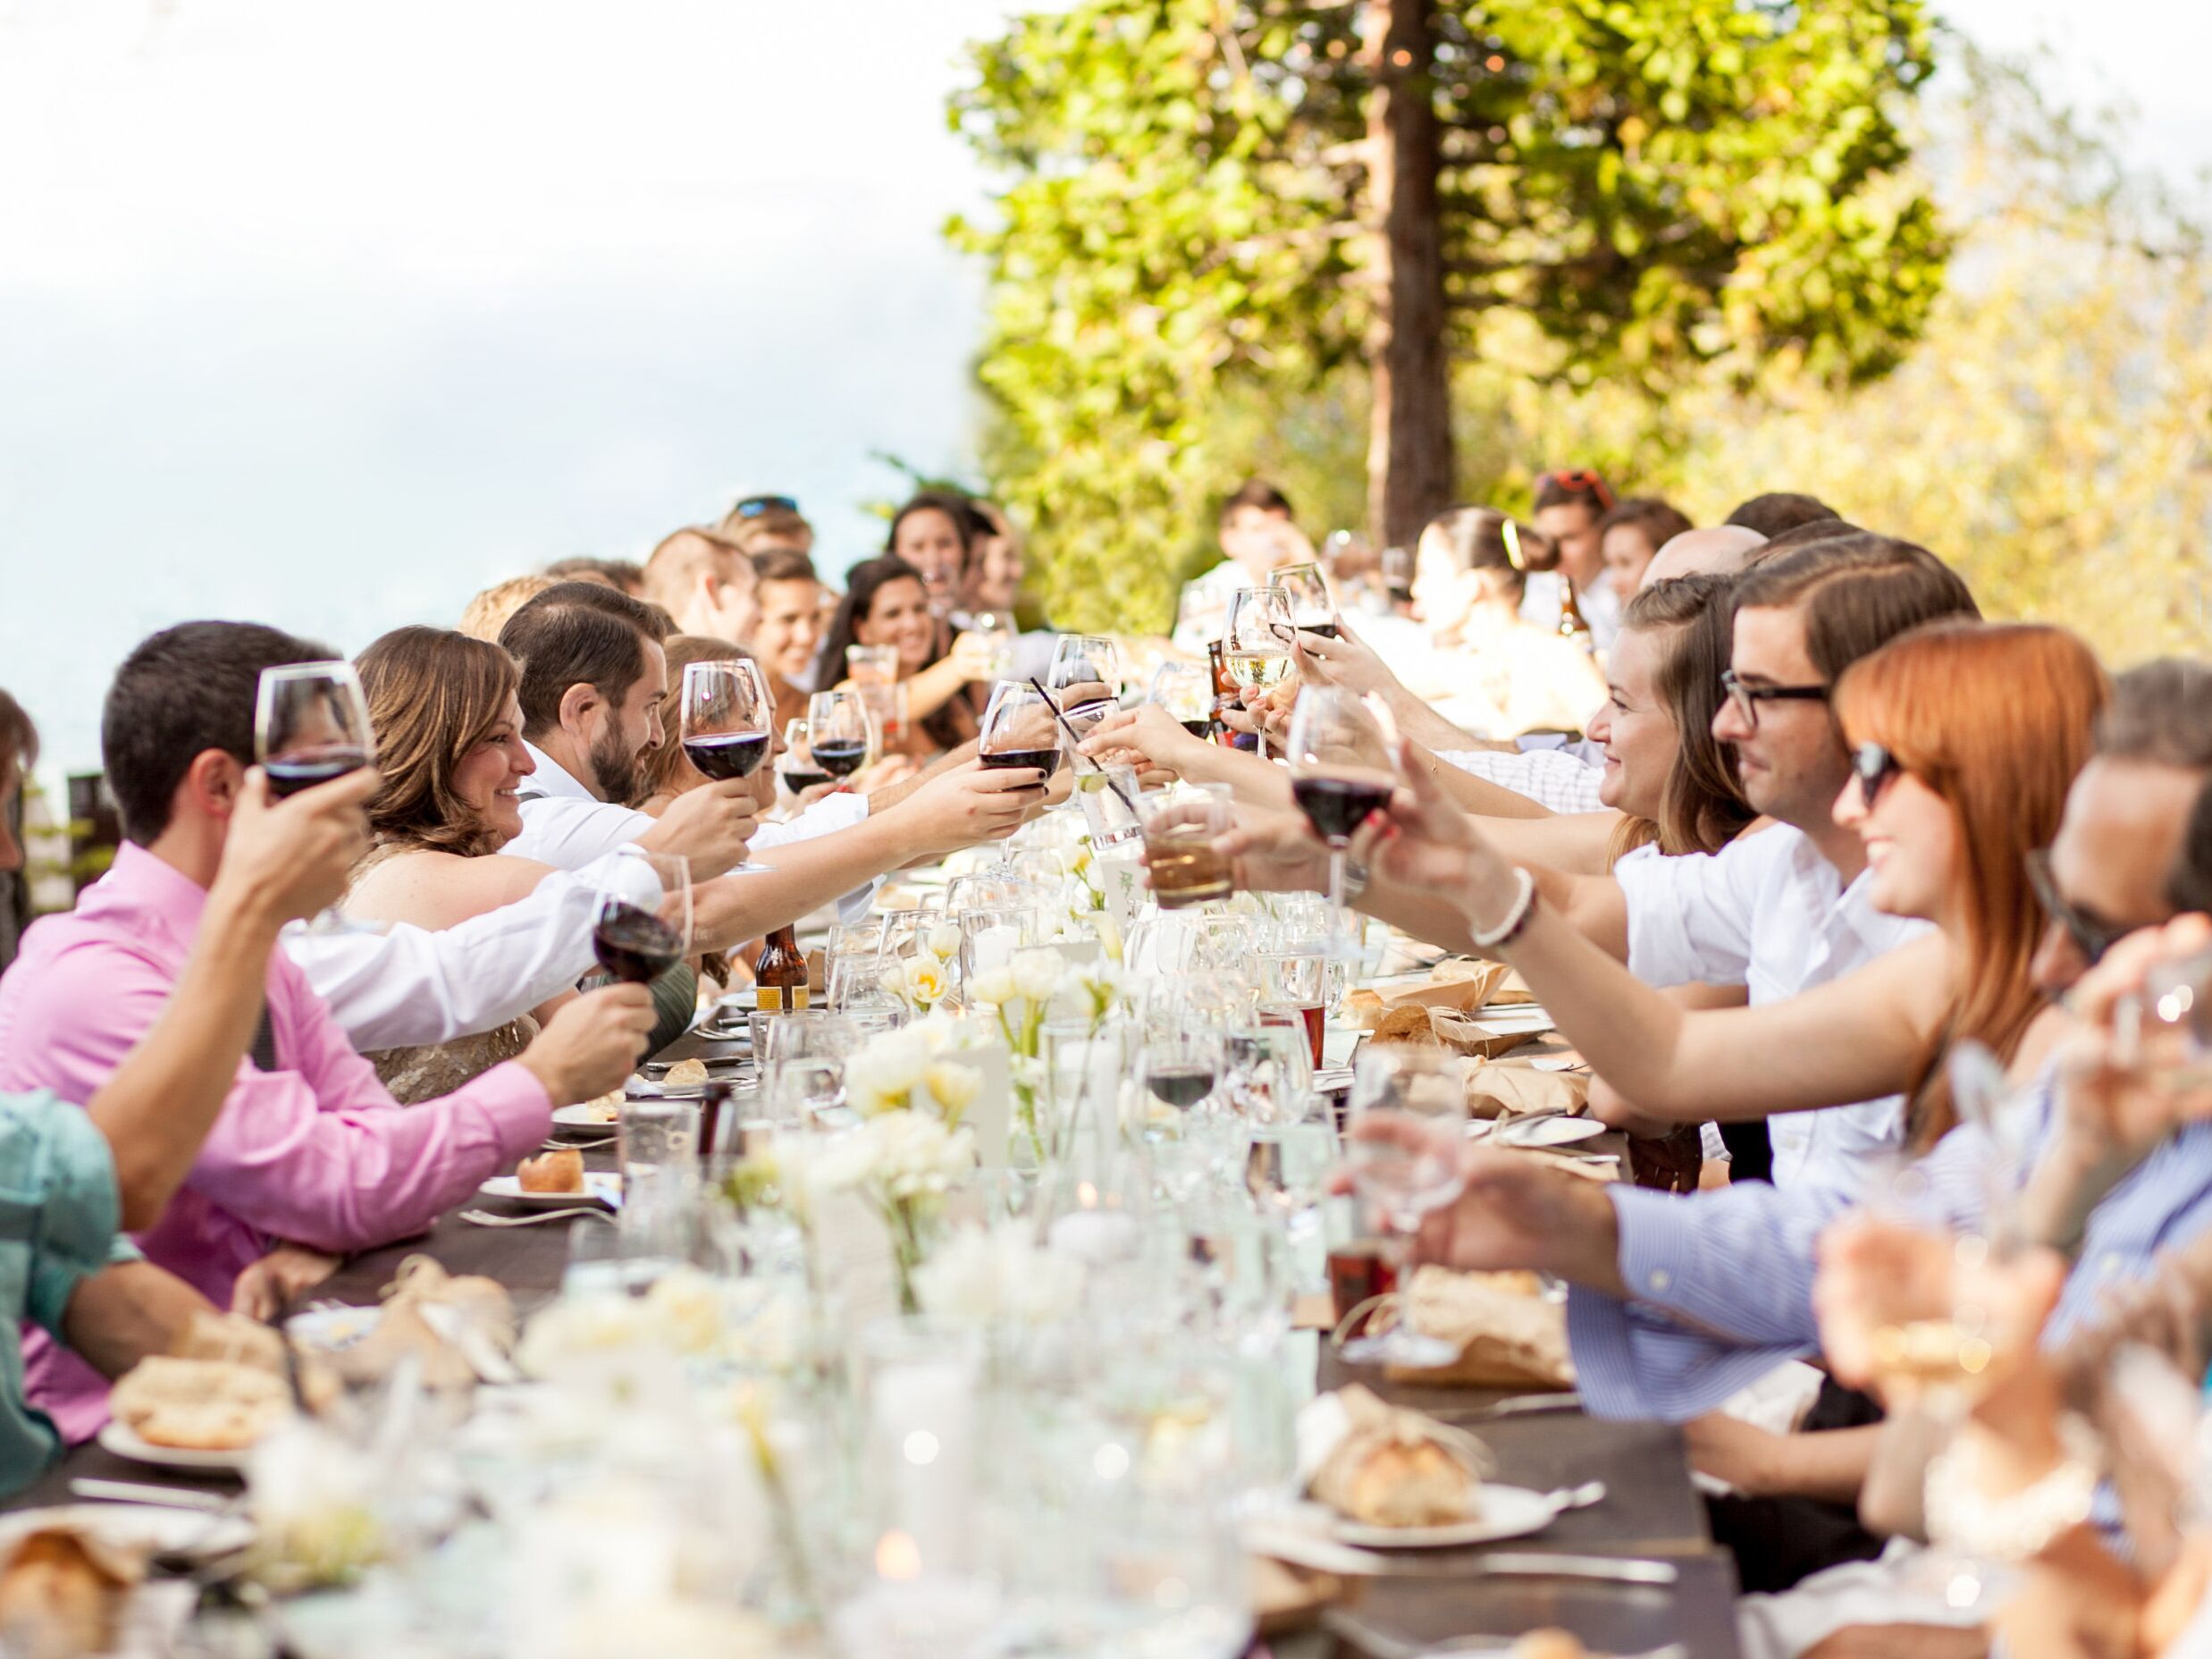 The 10 Best Rehearsal Dinner Themes & Ideas